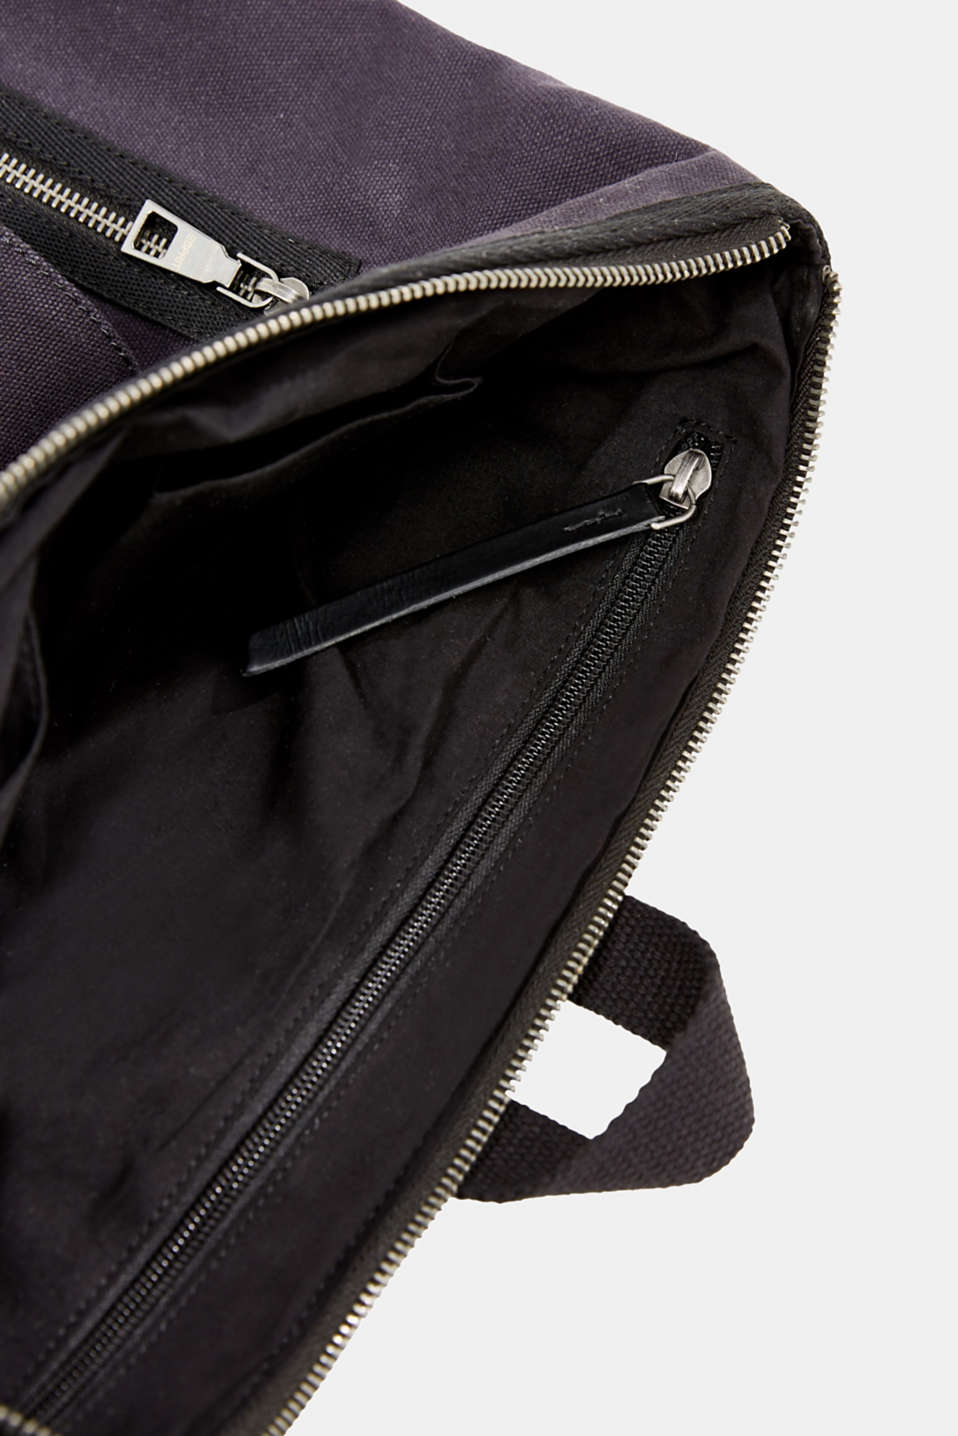 Rucksack with leather details, canvas, NAVY, detail image number 4